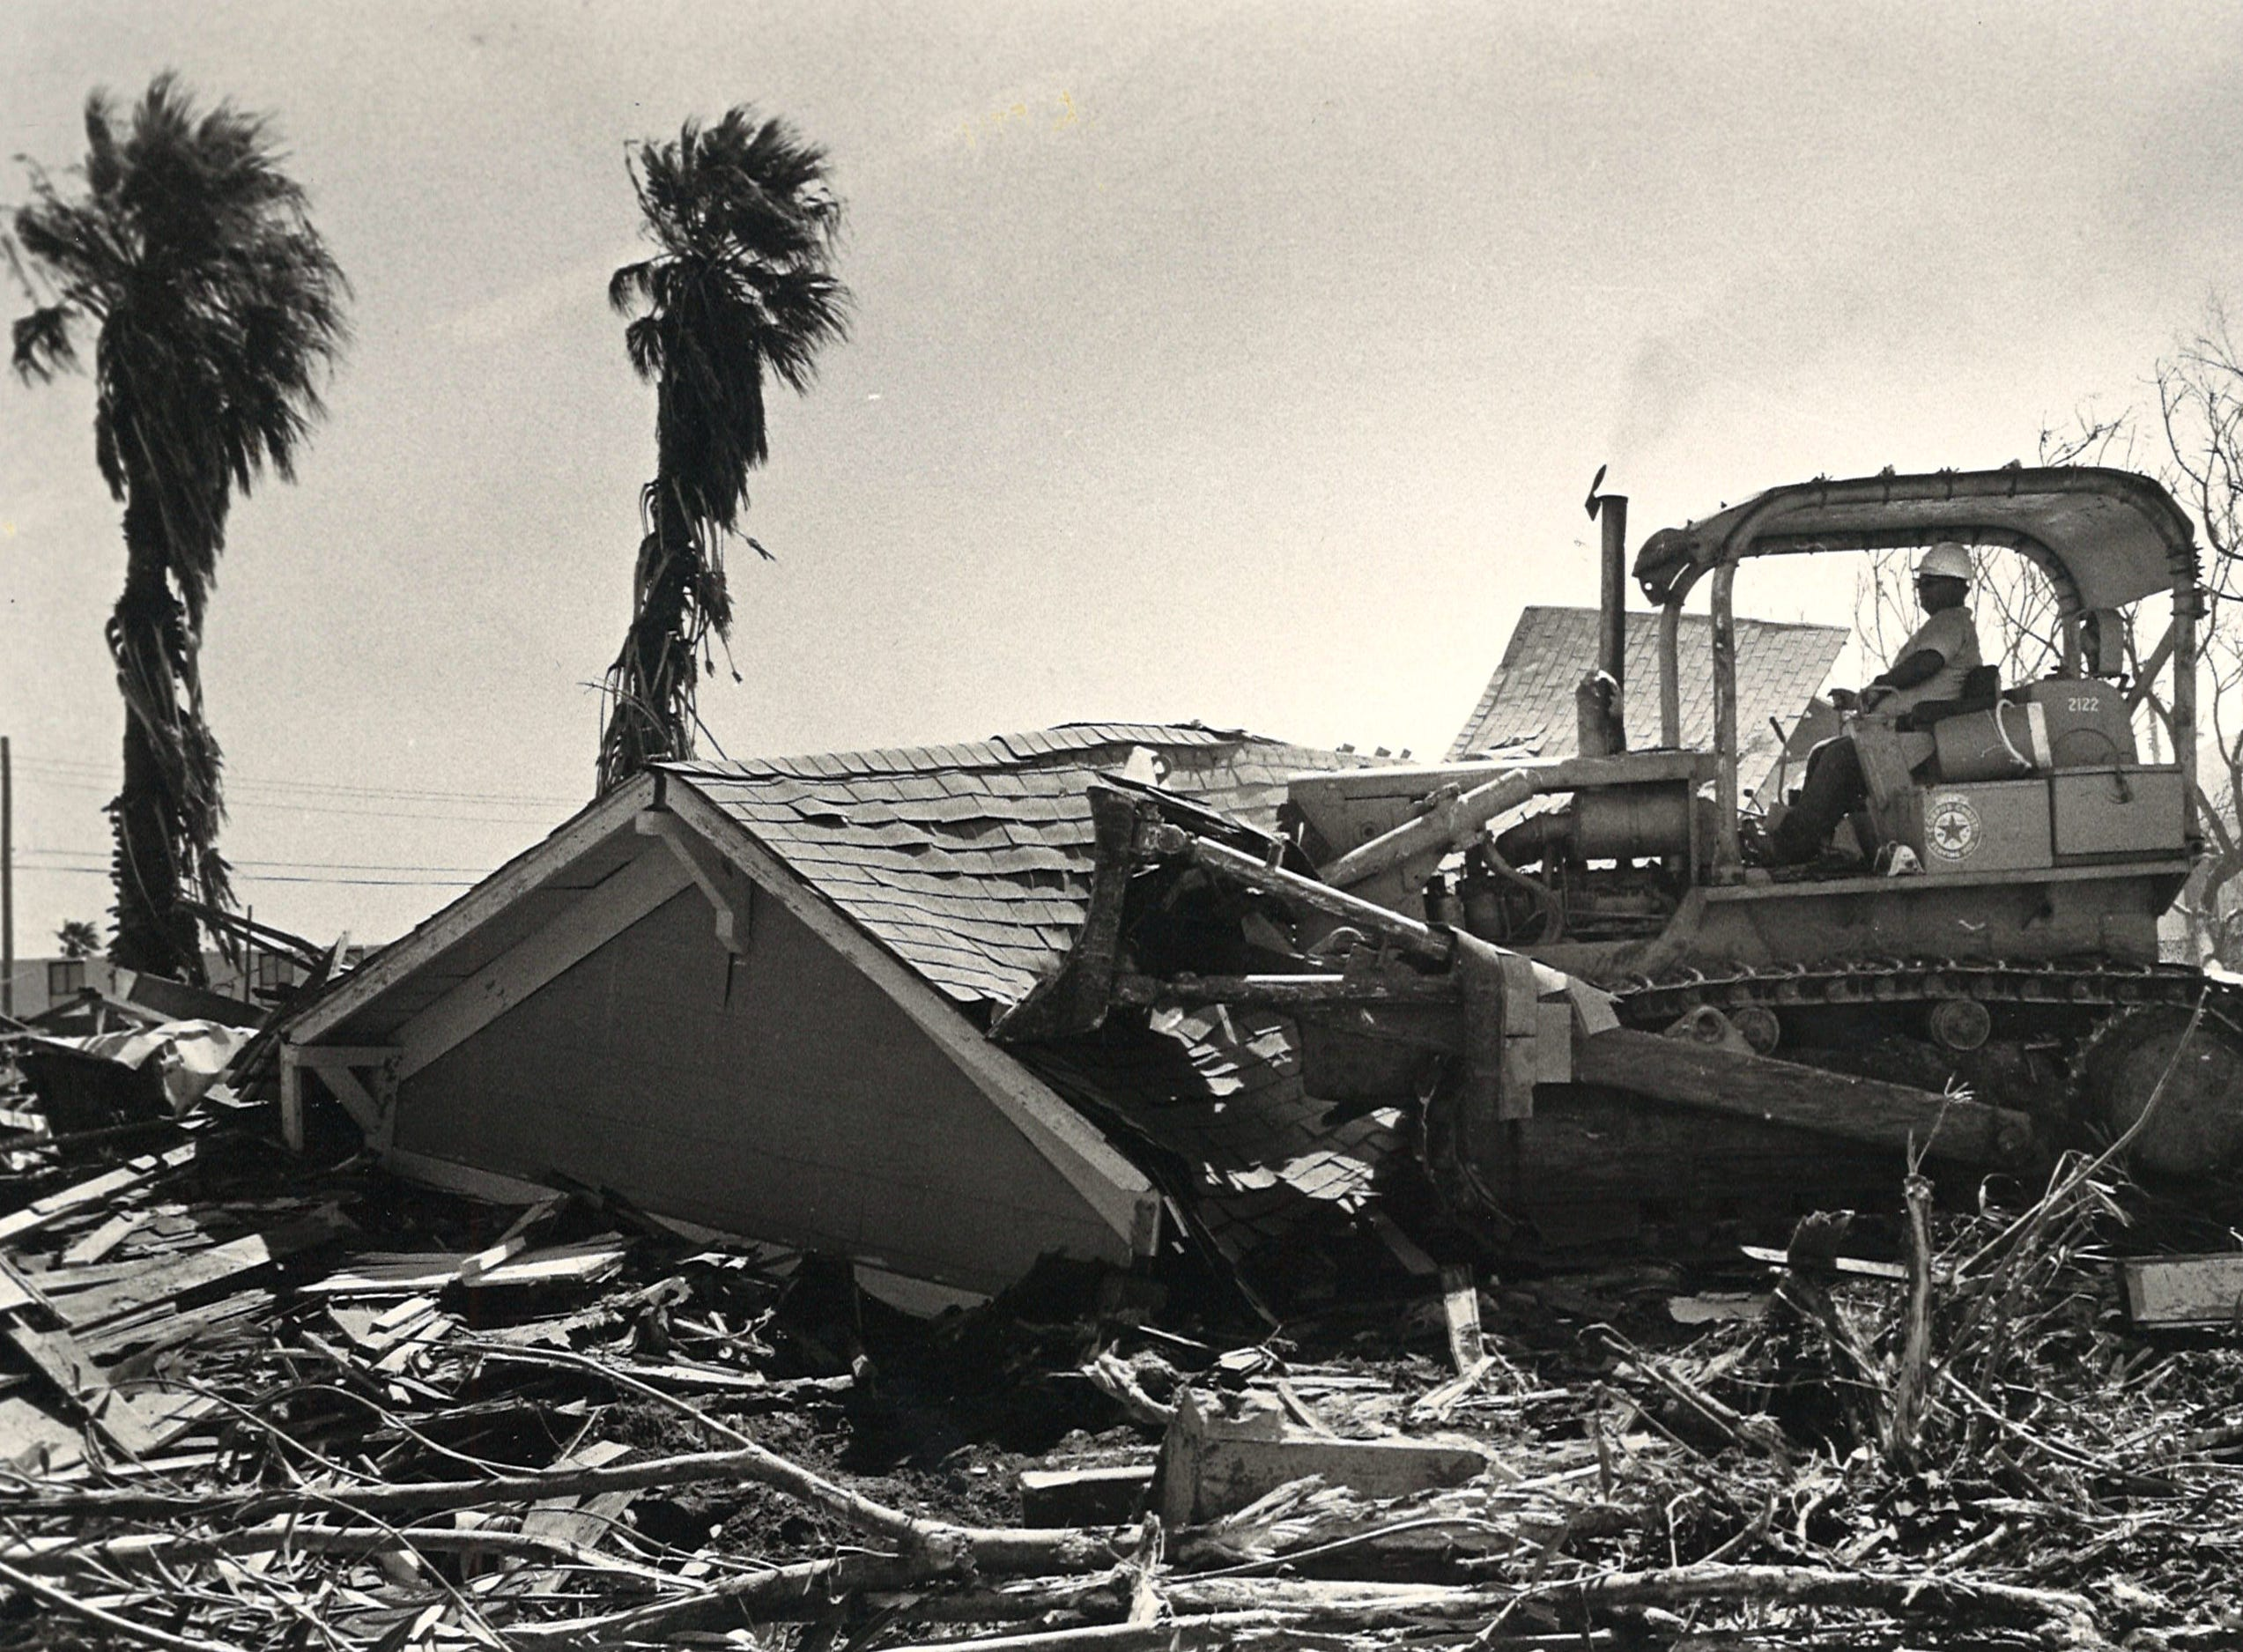 A city worker bulldozes the Sea Shell Inn on Corpus Christi's North Beach on Aug. 21, 1980. Many buildings were razed after suffering heavy damage from Hurricane Allen earlier that month.